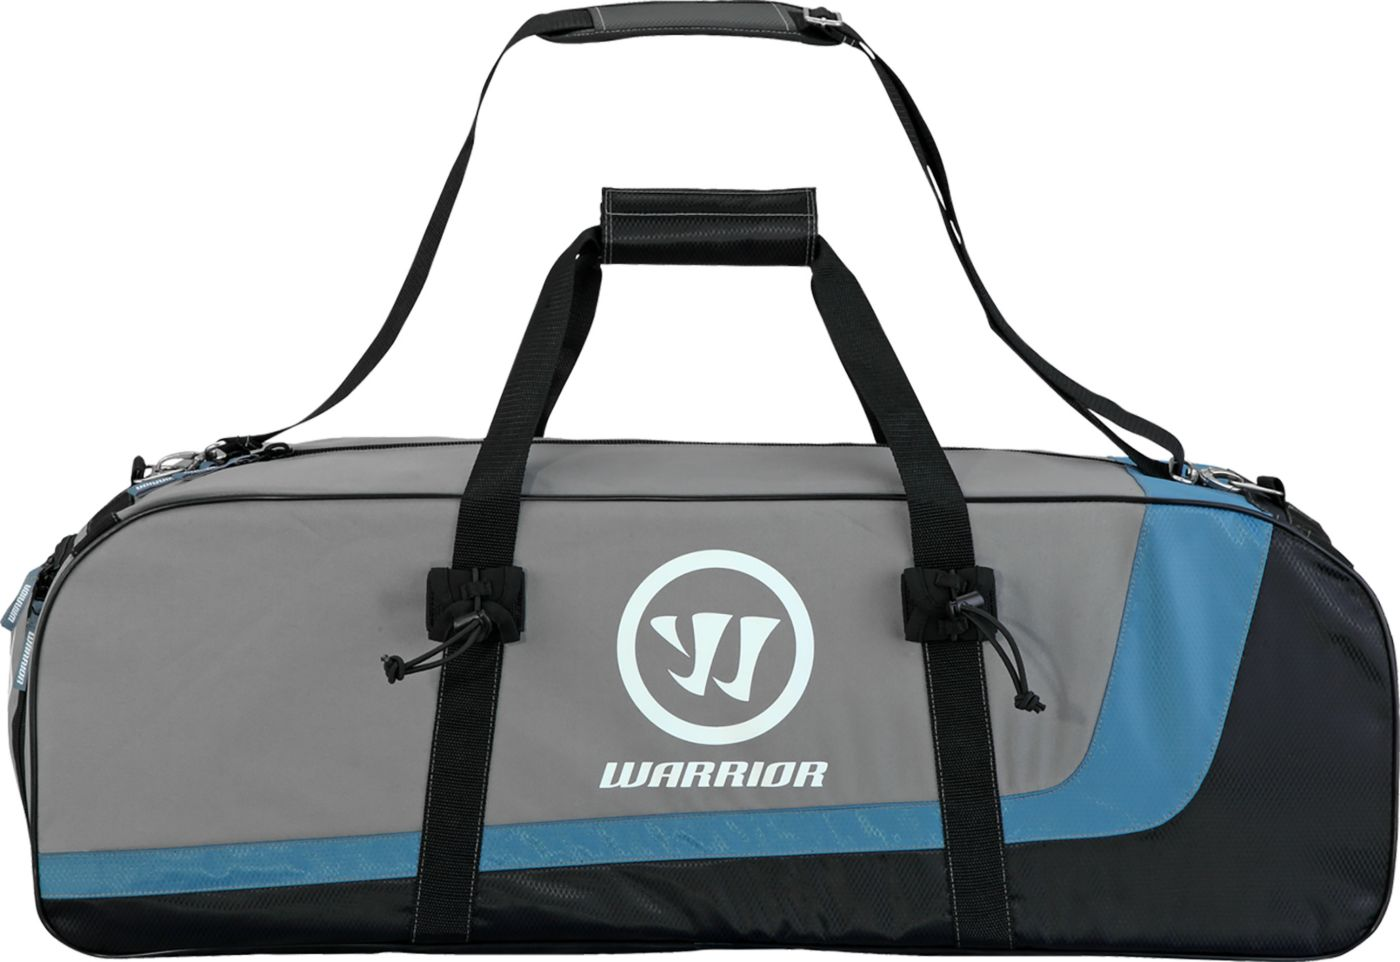 Warrior Black Hole Shorty 2018 Lacrosse Equipment Bag